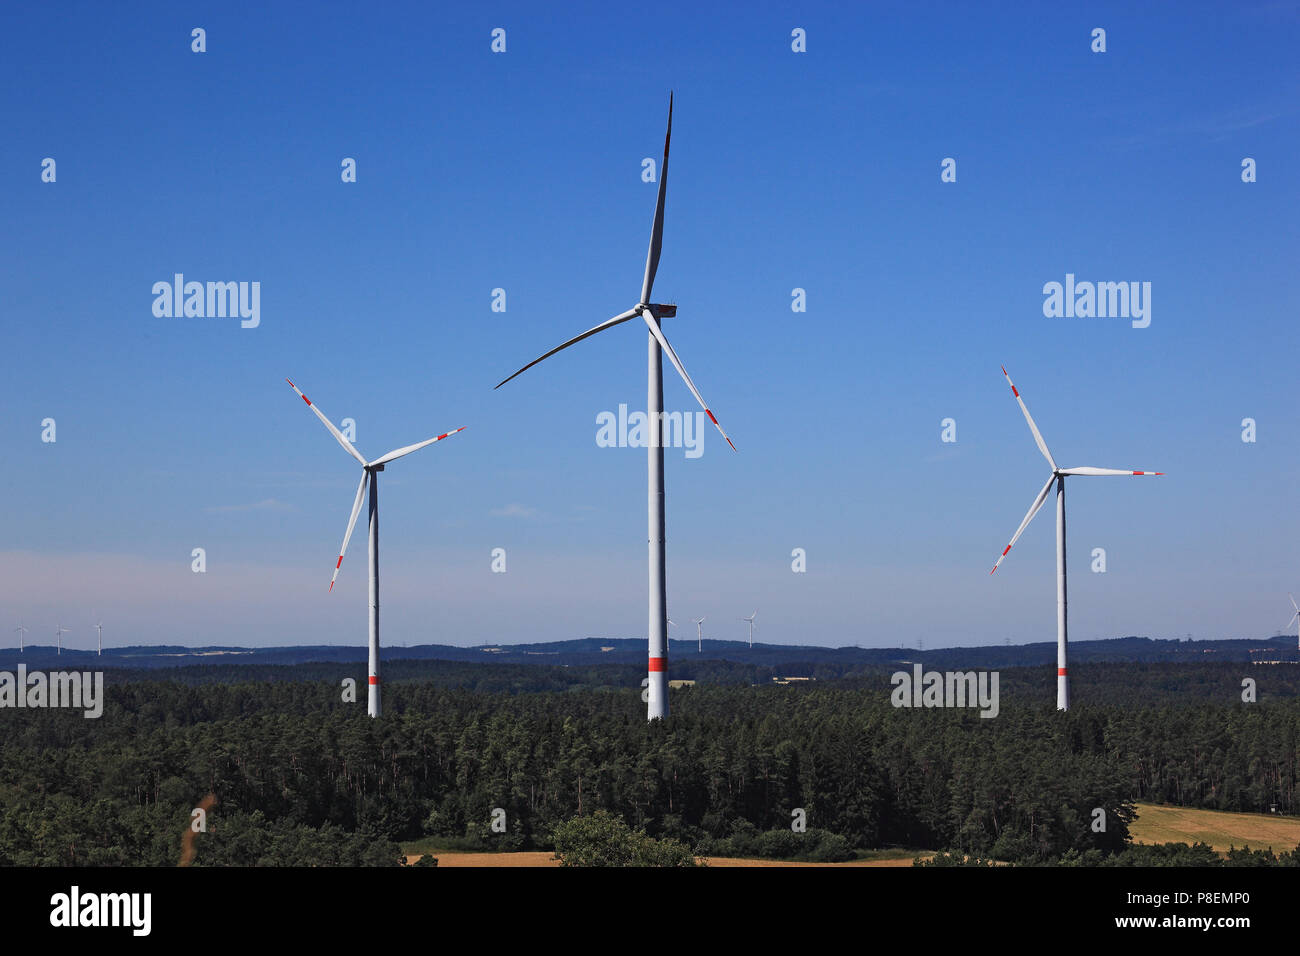 Wind generators, Windmills in the landscape, Windgeneratoren in der Landschaft, Bayern, Deutschland - Stock Image